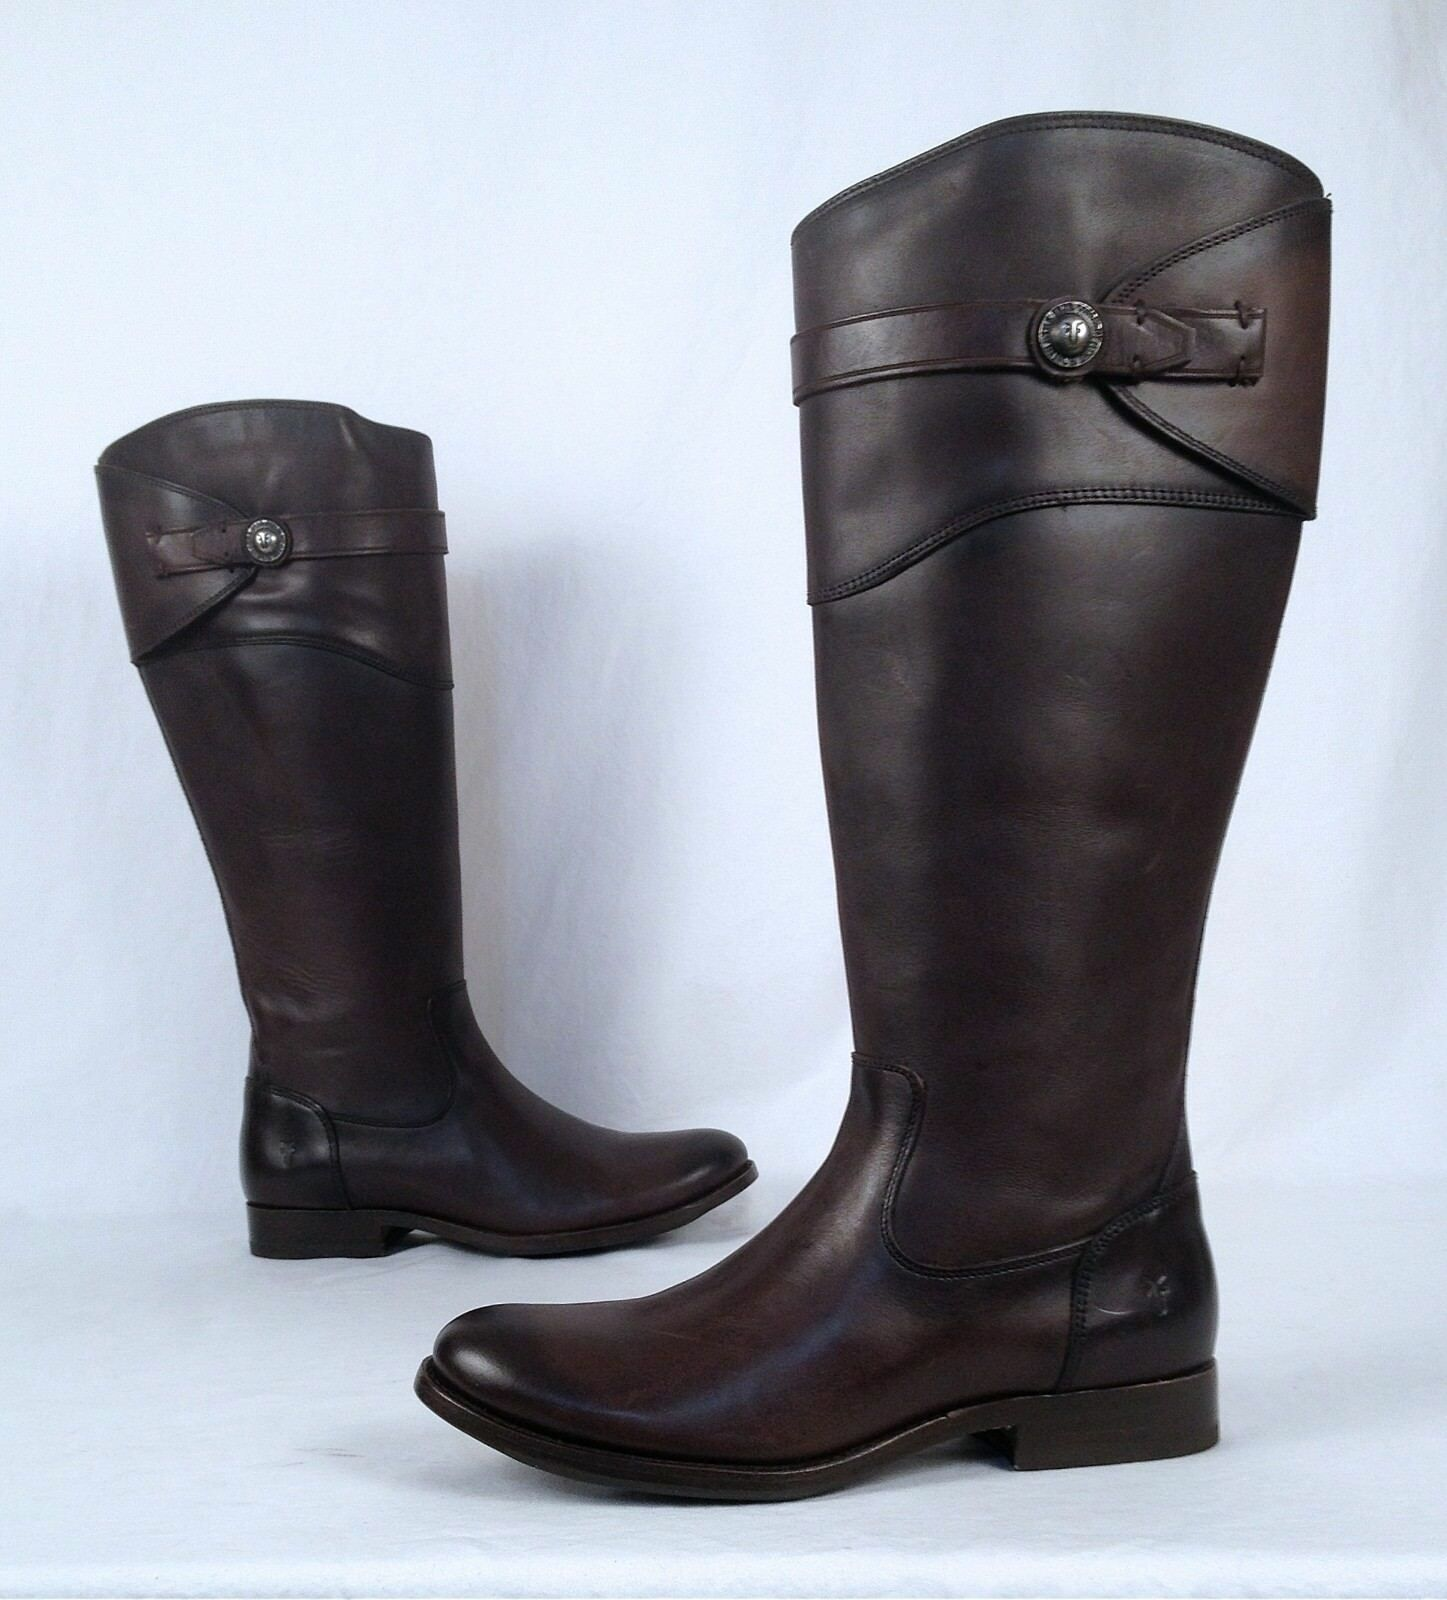 NEW!! Frye 'Molly Button' Tall Riding Boot- Brown- Size 7.5 B   425 (B16)